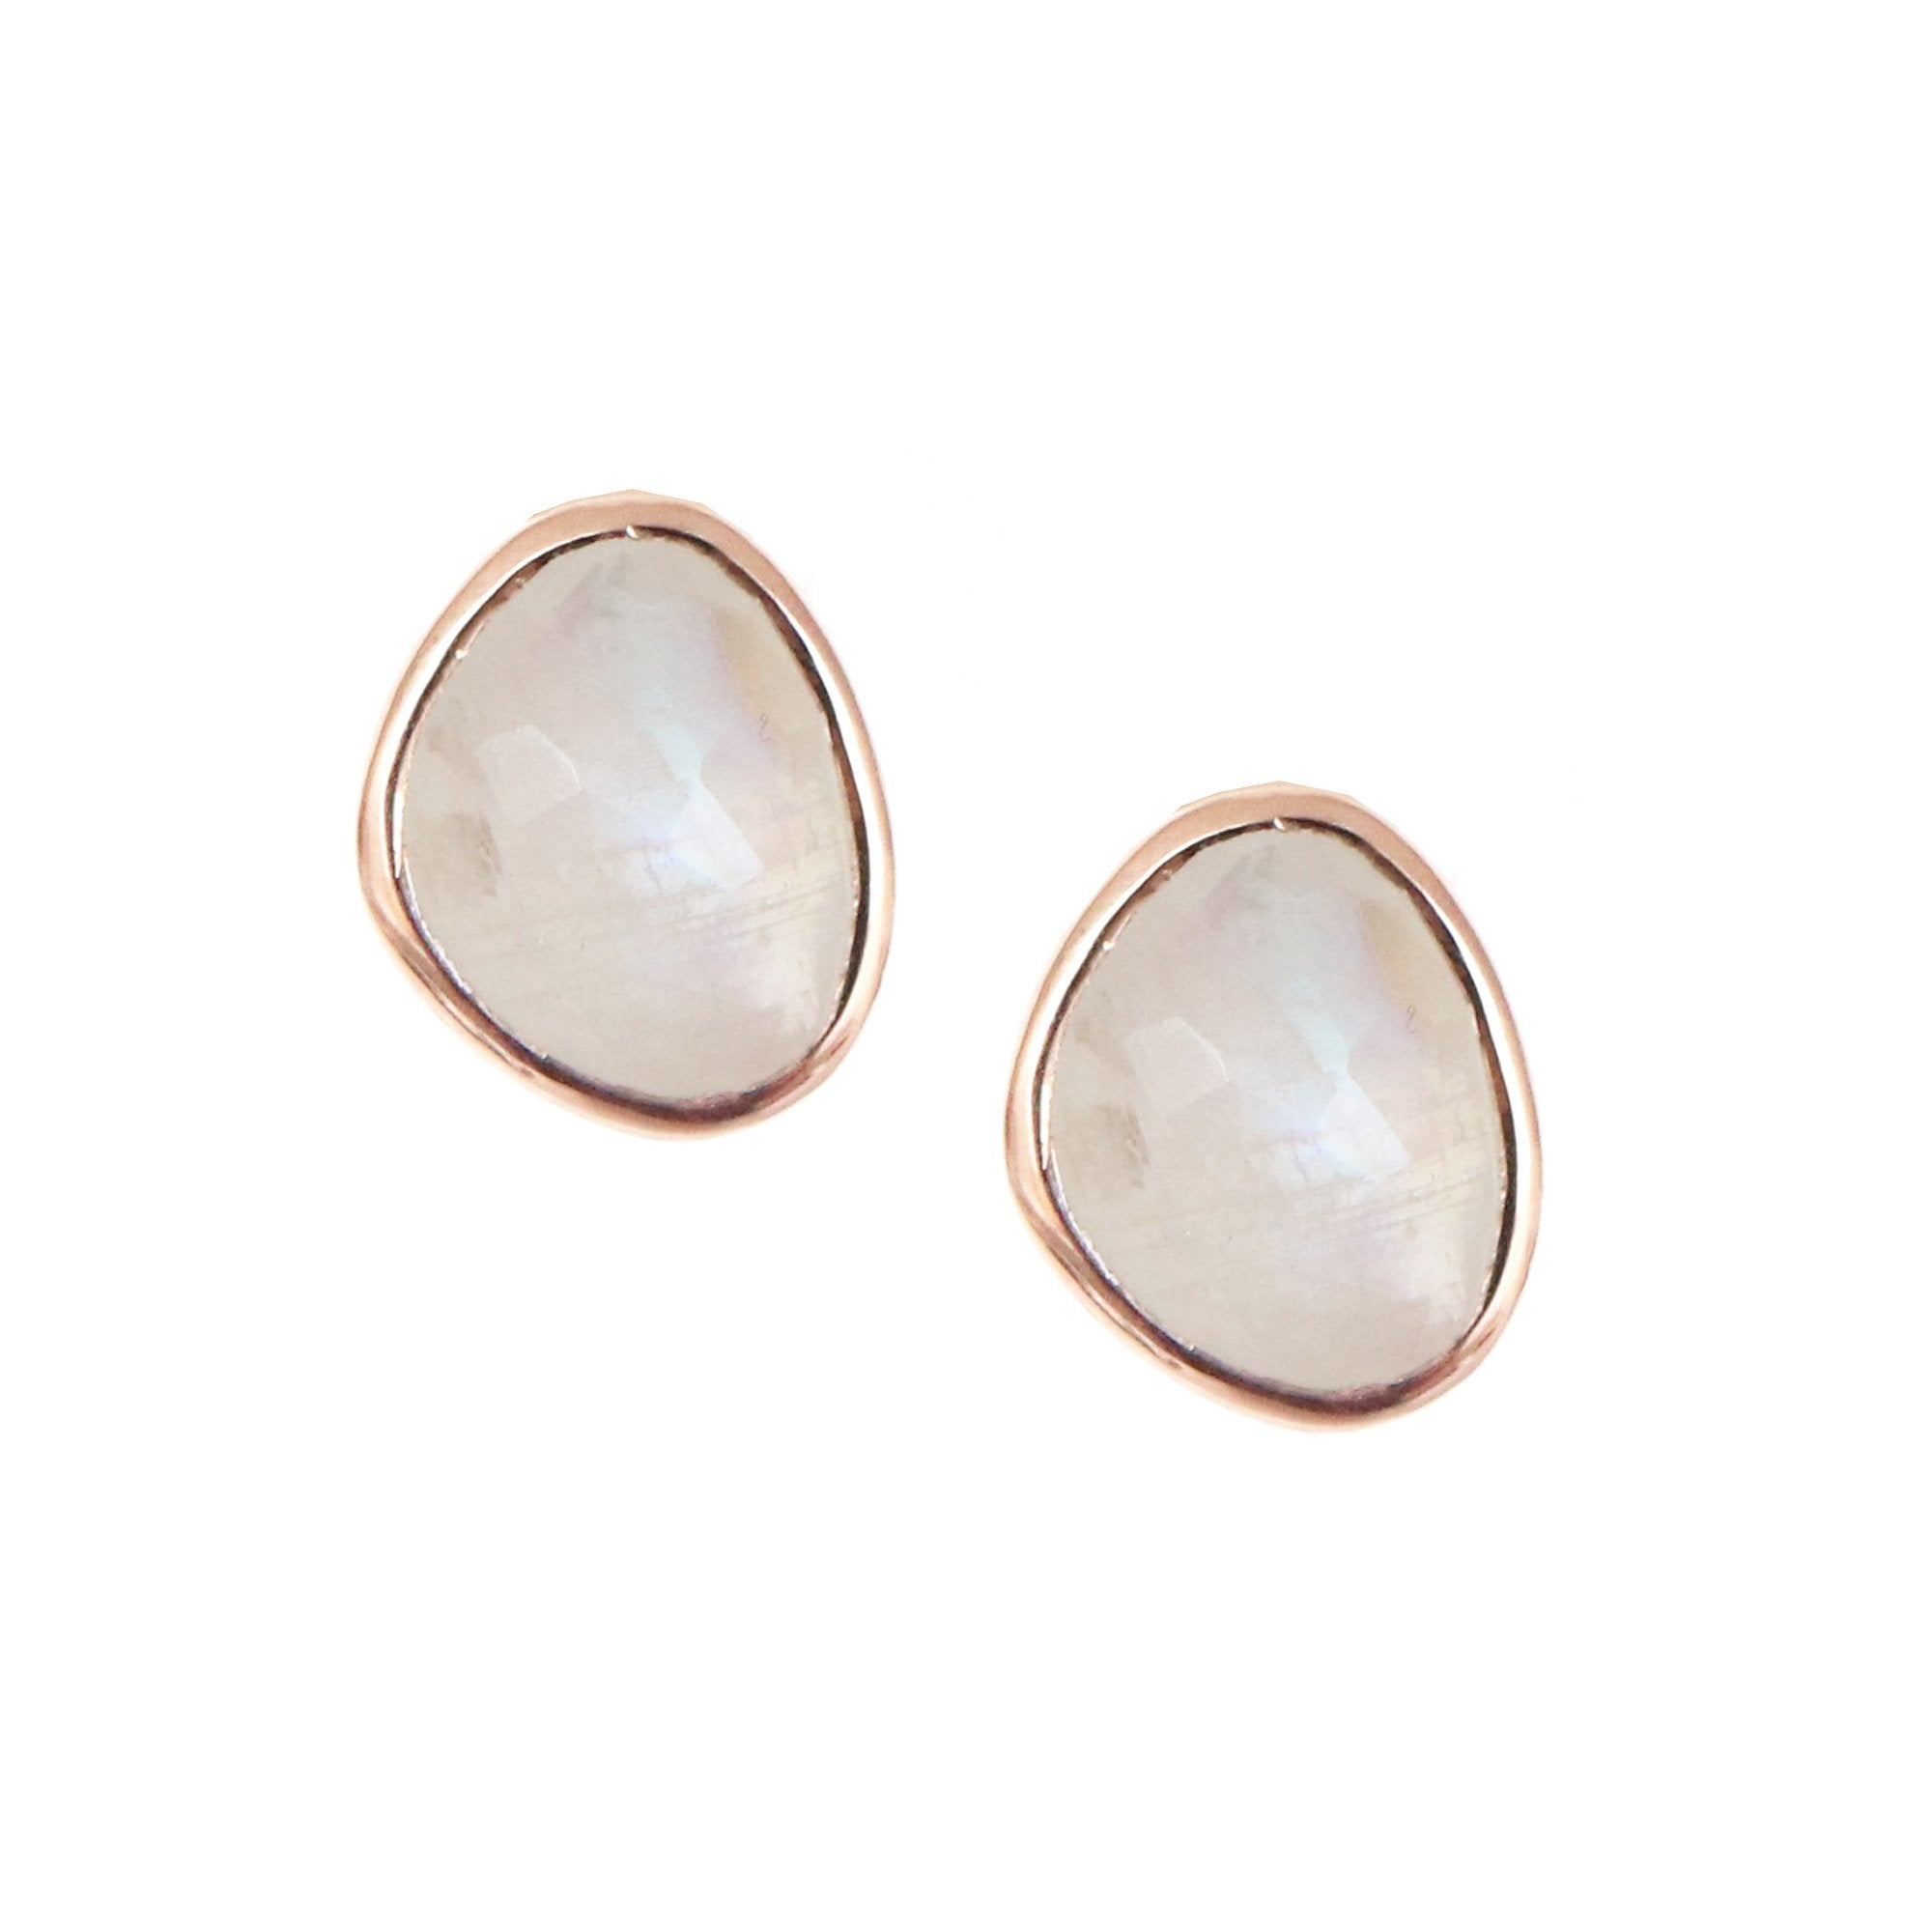 JOY STUDS - RAINBOW MOONSTONE & ROSE GOLD - SO PRETTY CARA COTTER